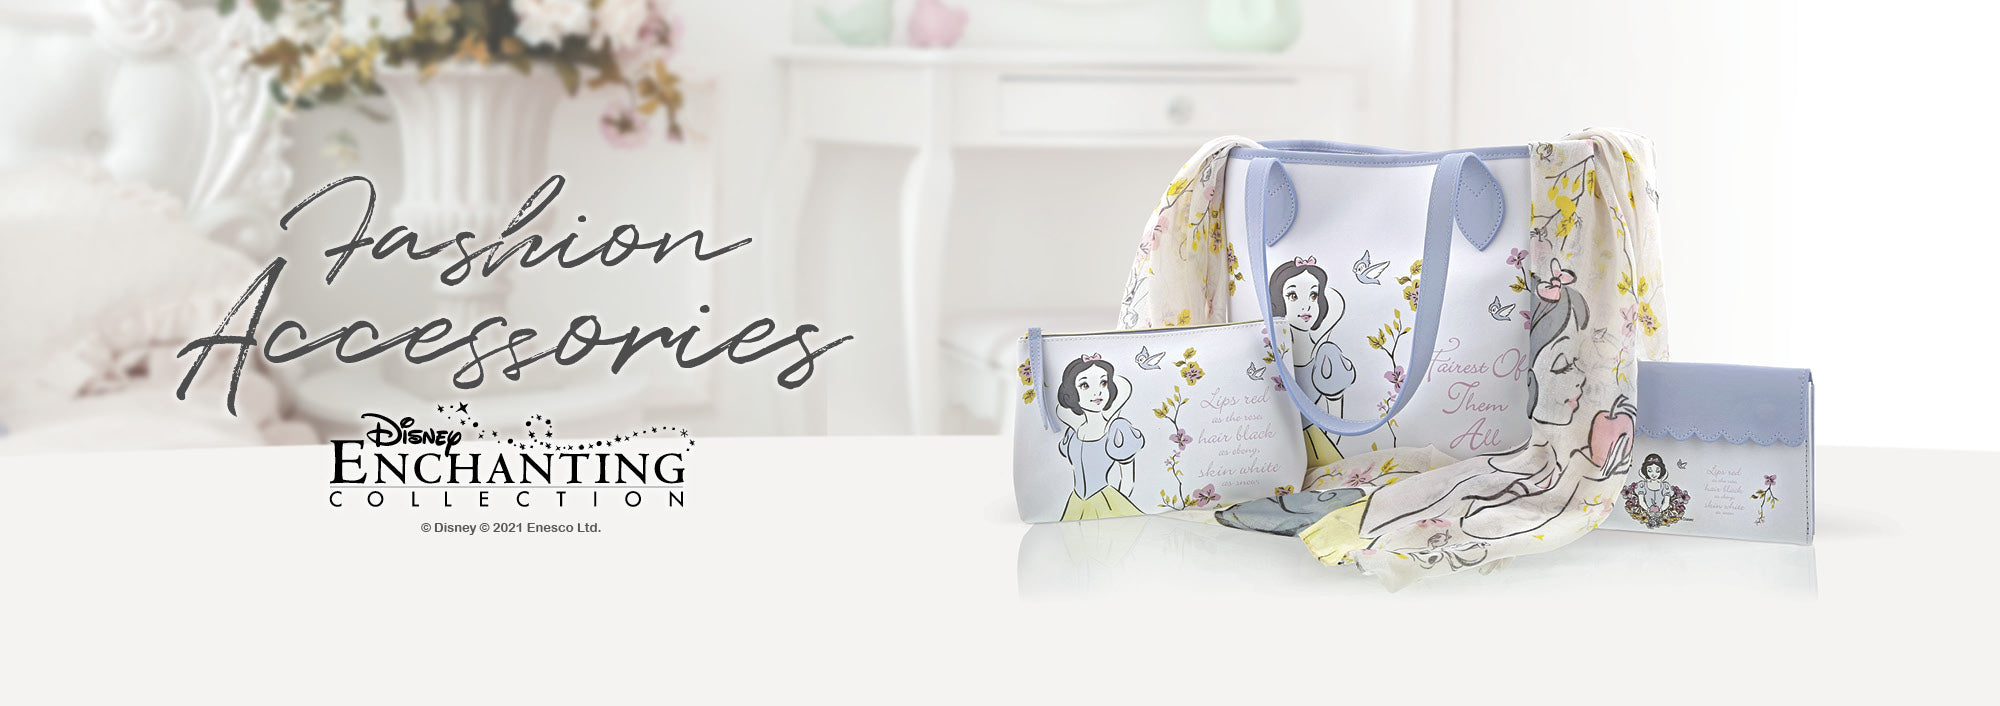 Disney Enchanting Fashion Accessories Collection